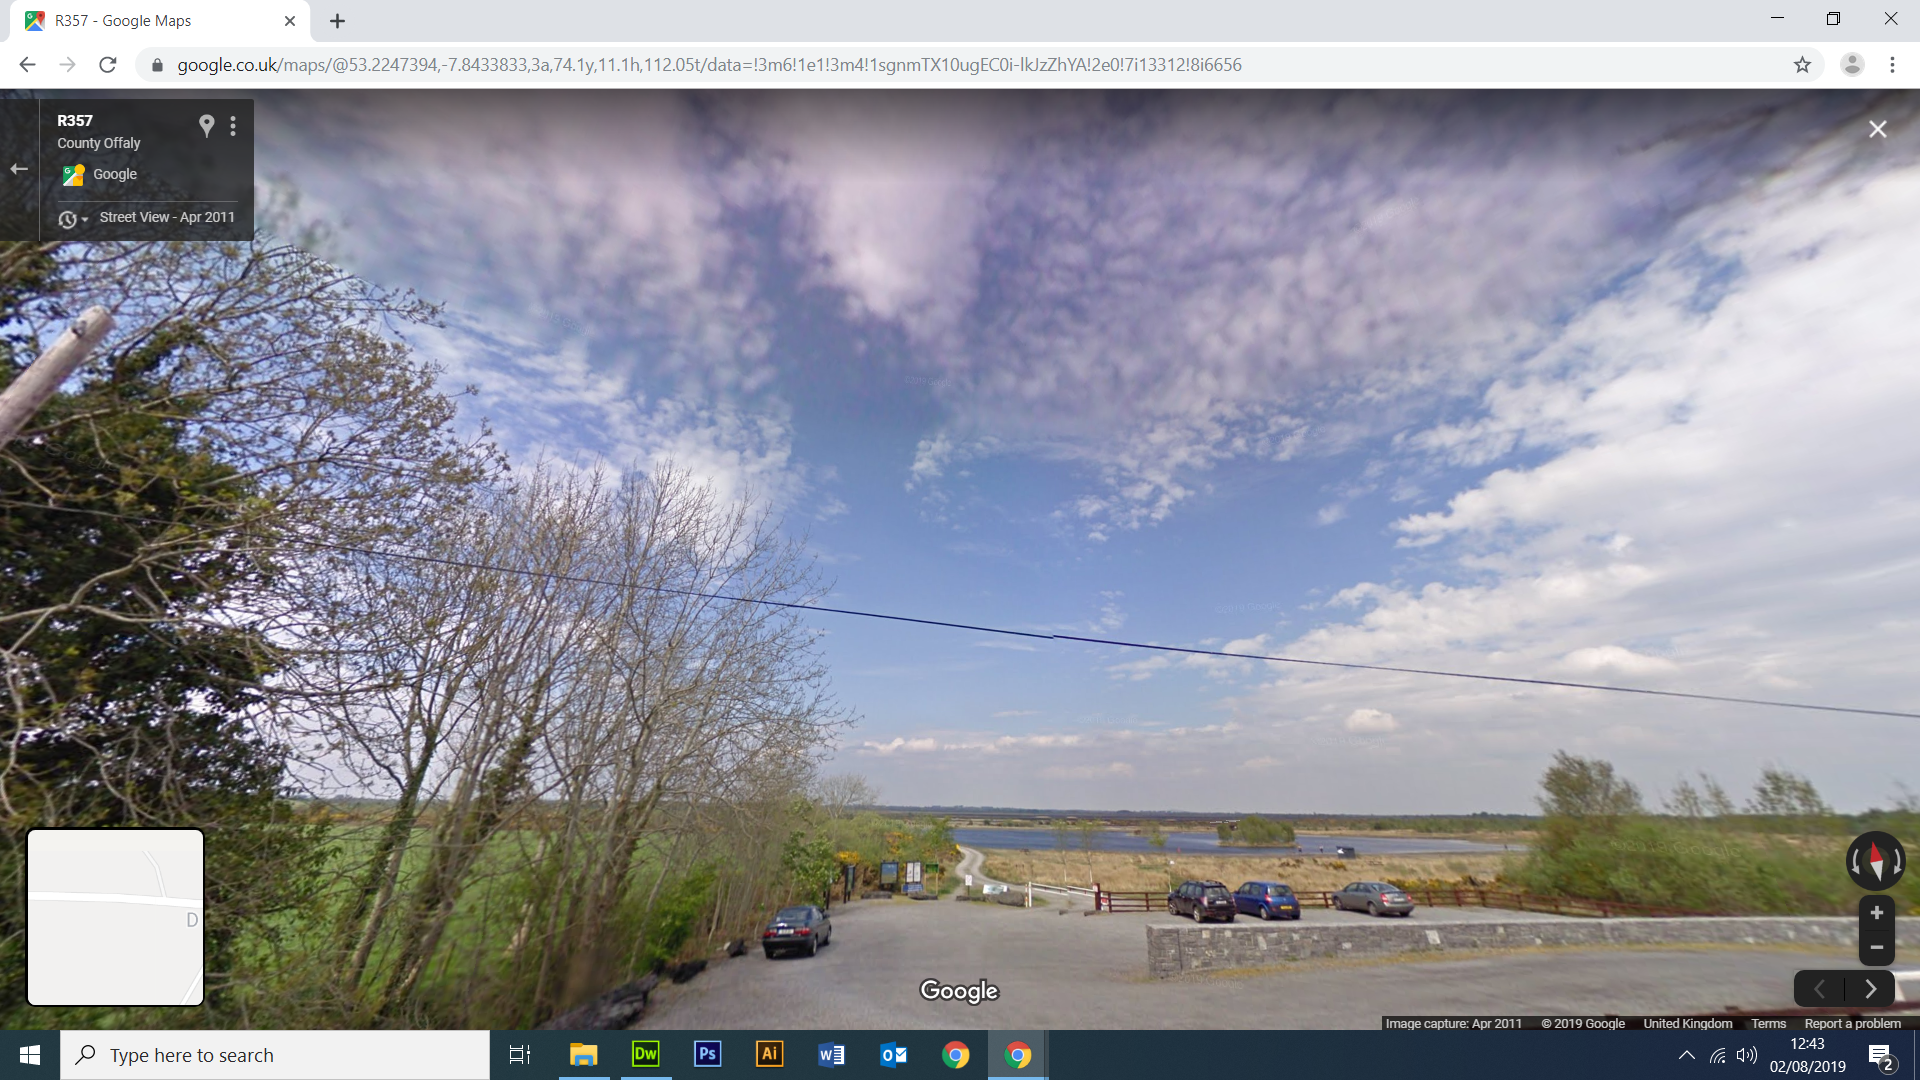 Google Street View Lough Cloghan